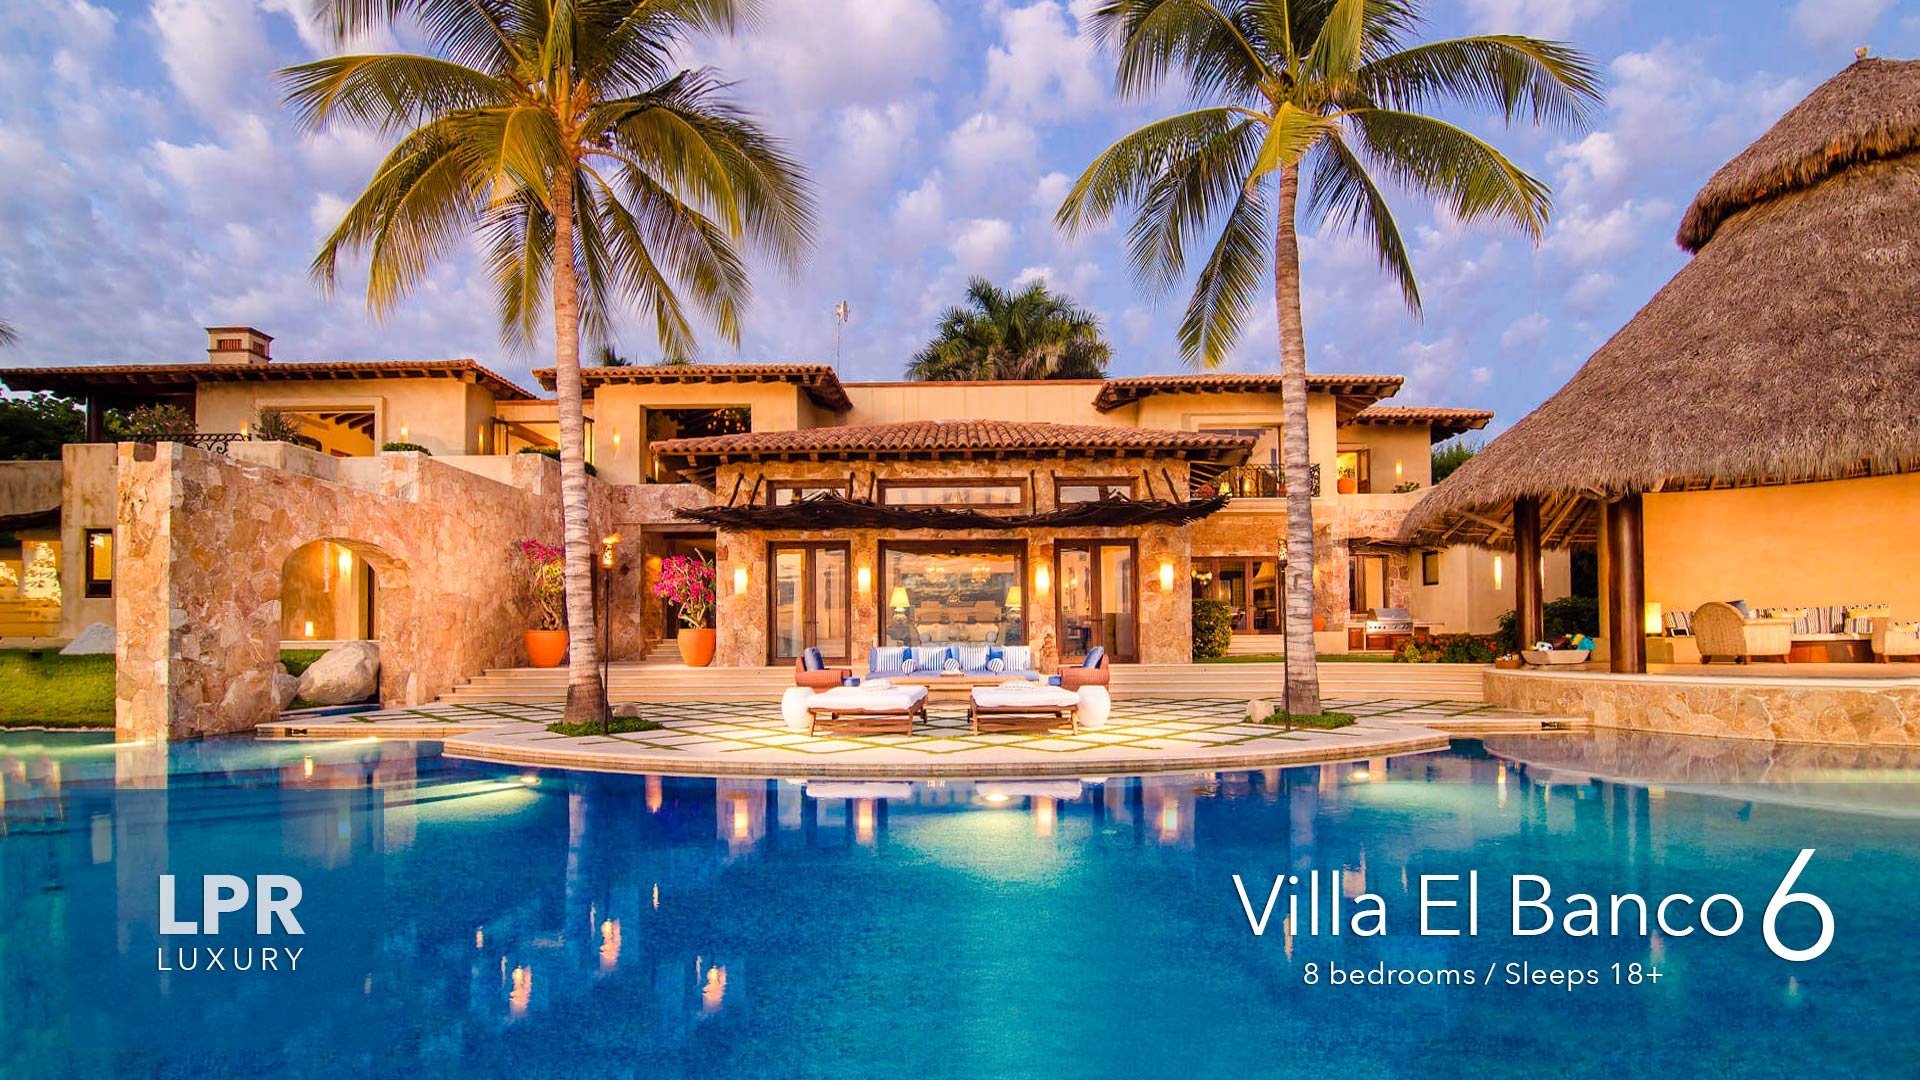 Villa El Banco 6 - Ultra Luxury vacation rental villa at the Susurros del Corazon - Auberge Resort, Punta de Mita, Riviera Nayarit, Mexico